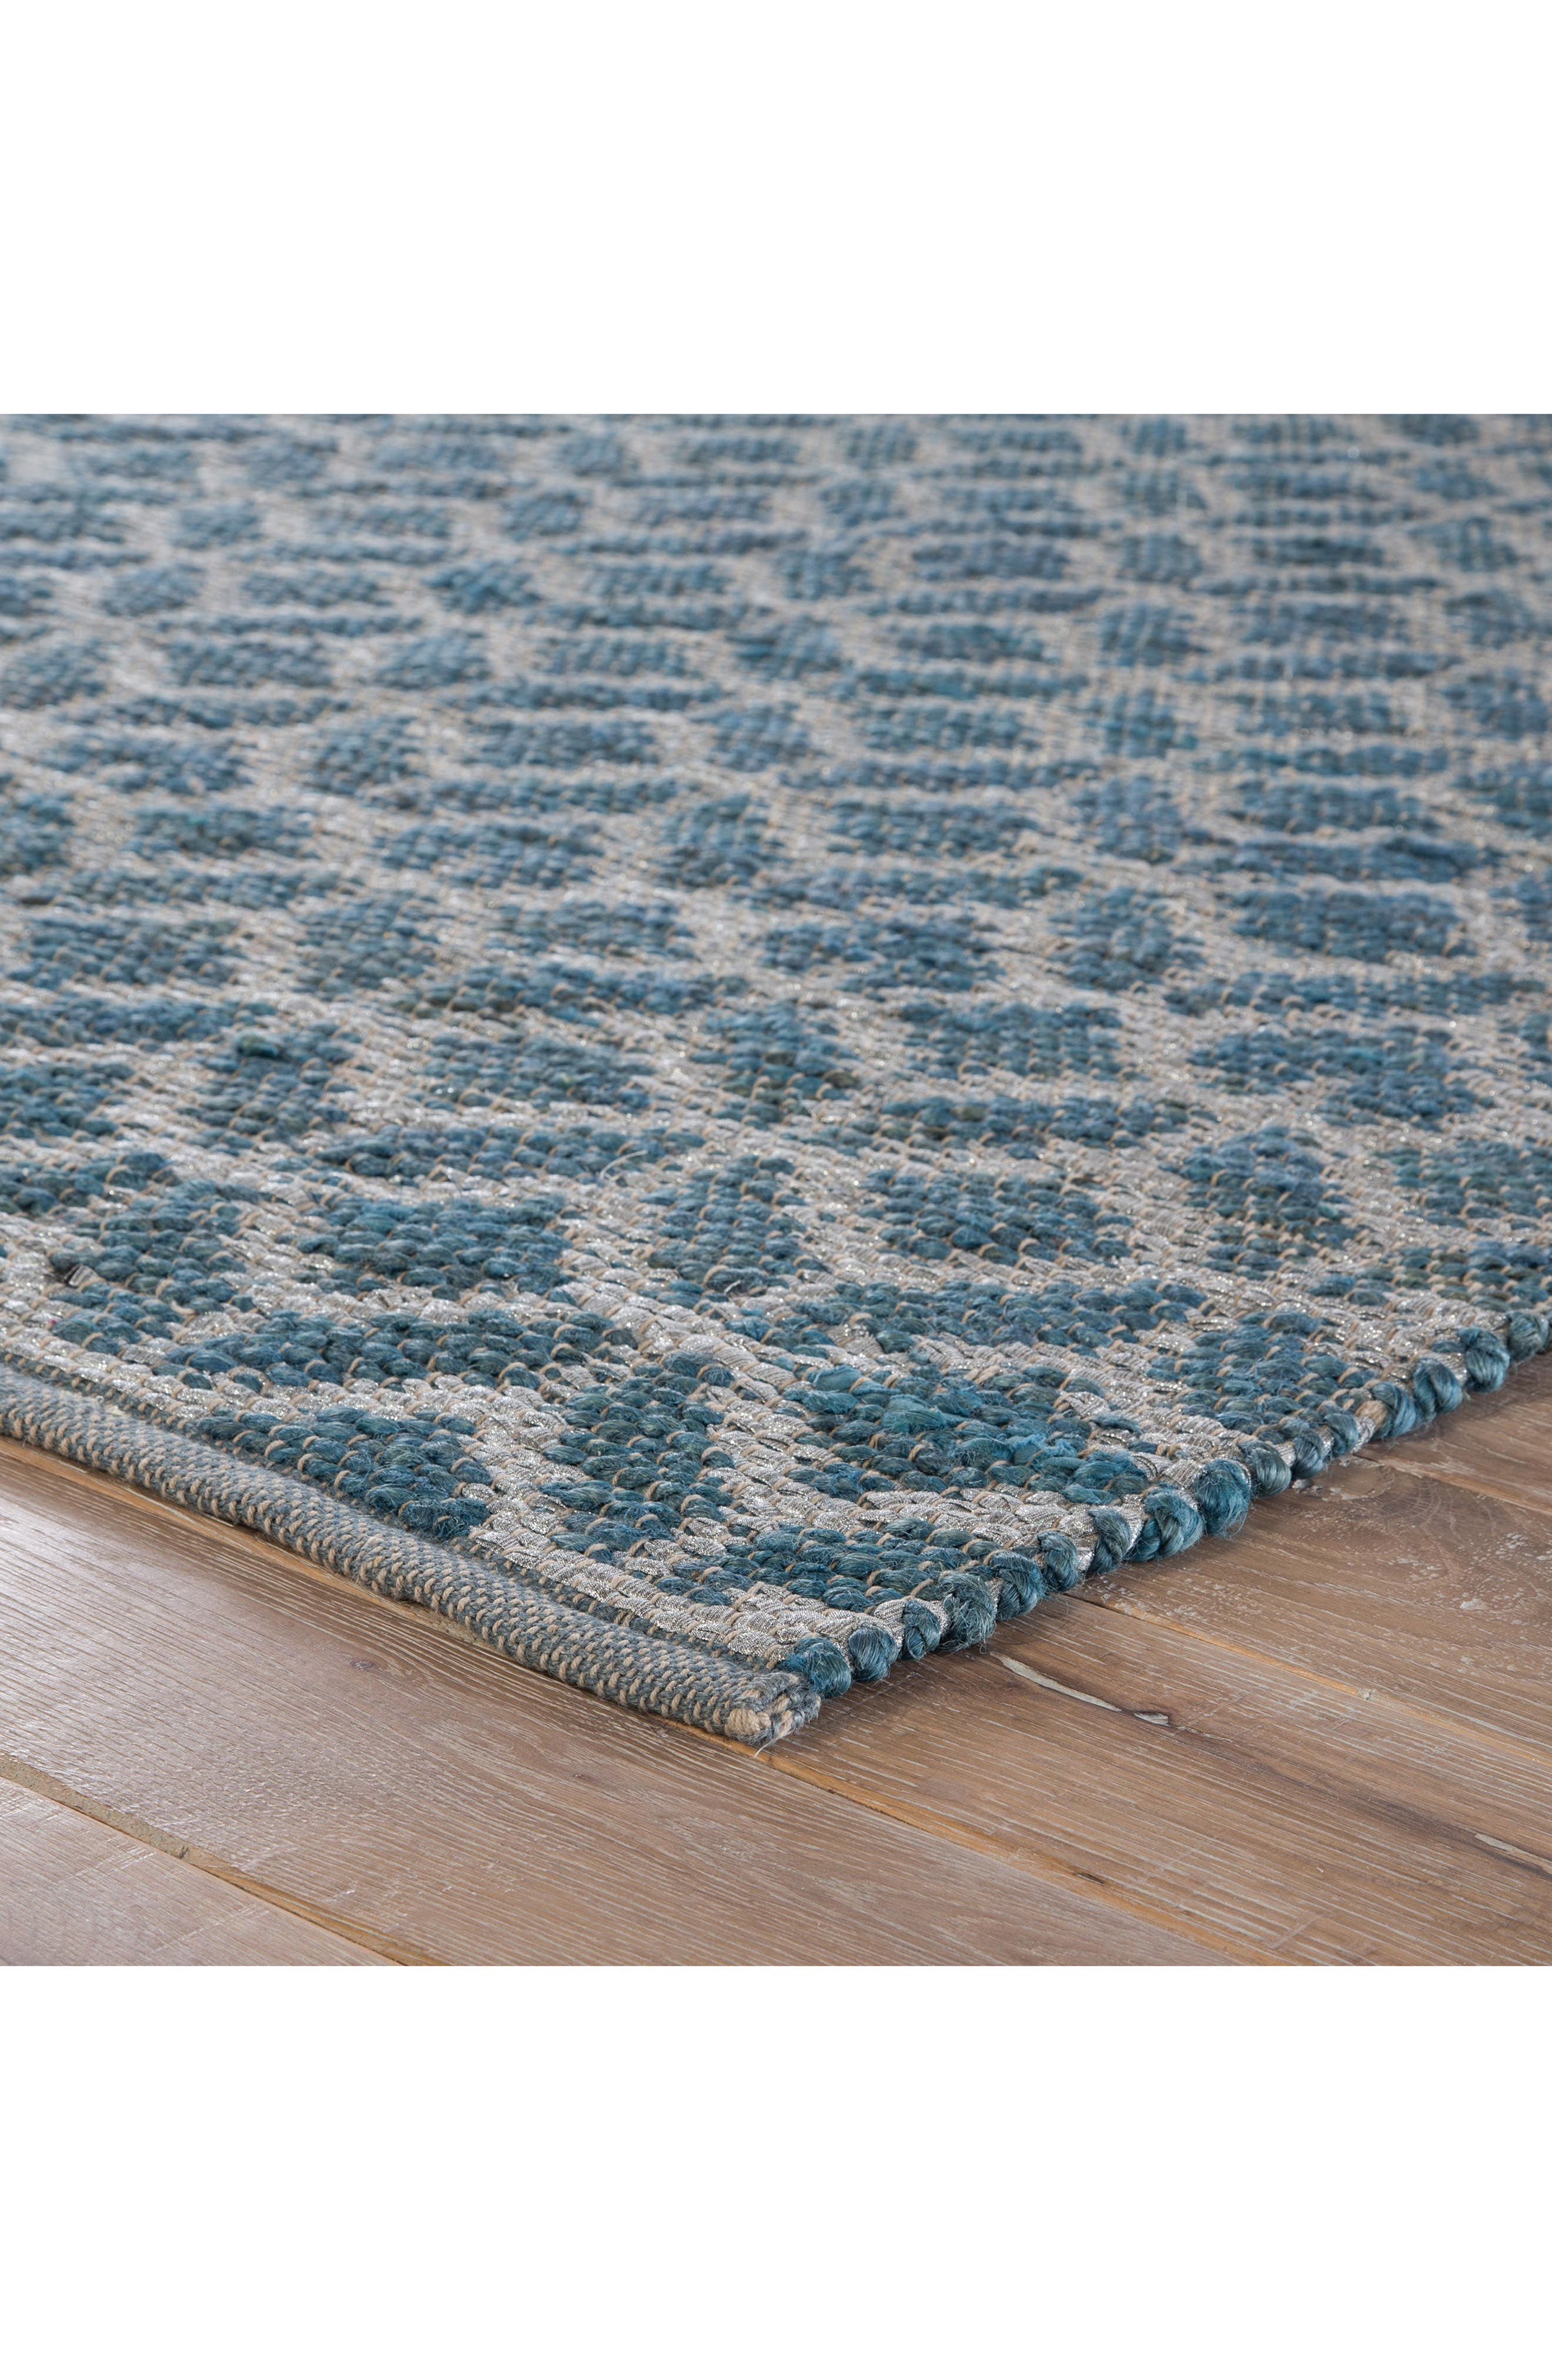 Calm Waters Rug,                             Alternate thumbnail 7, color,                             INDIAN TEAL/ SILVER